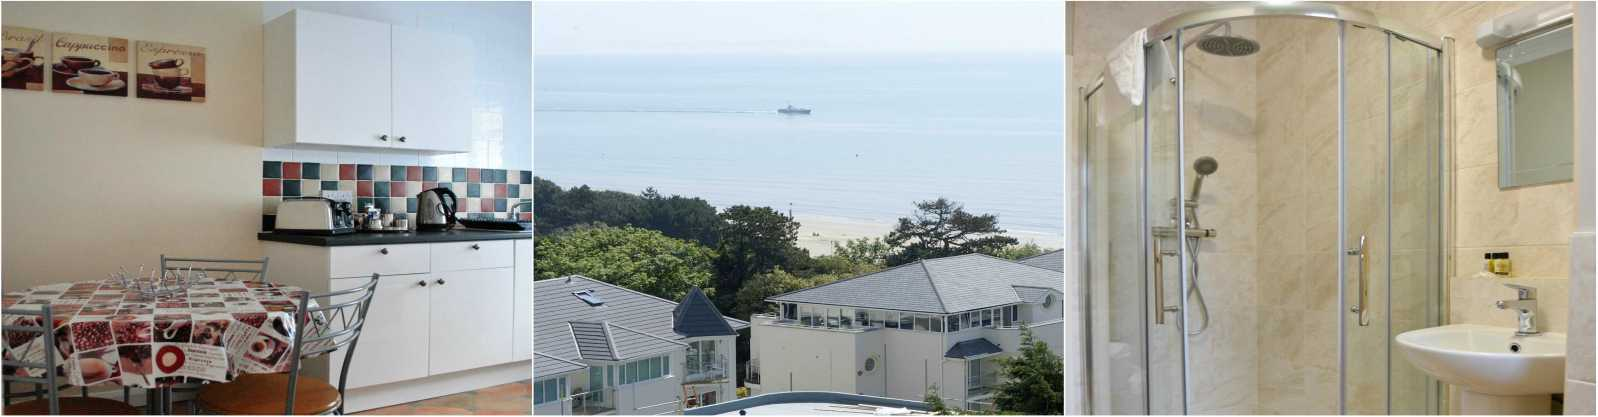 Apartment Bournemouth & Self Catering Holiday Apartments Poole